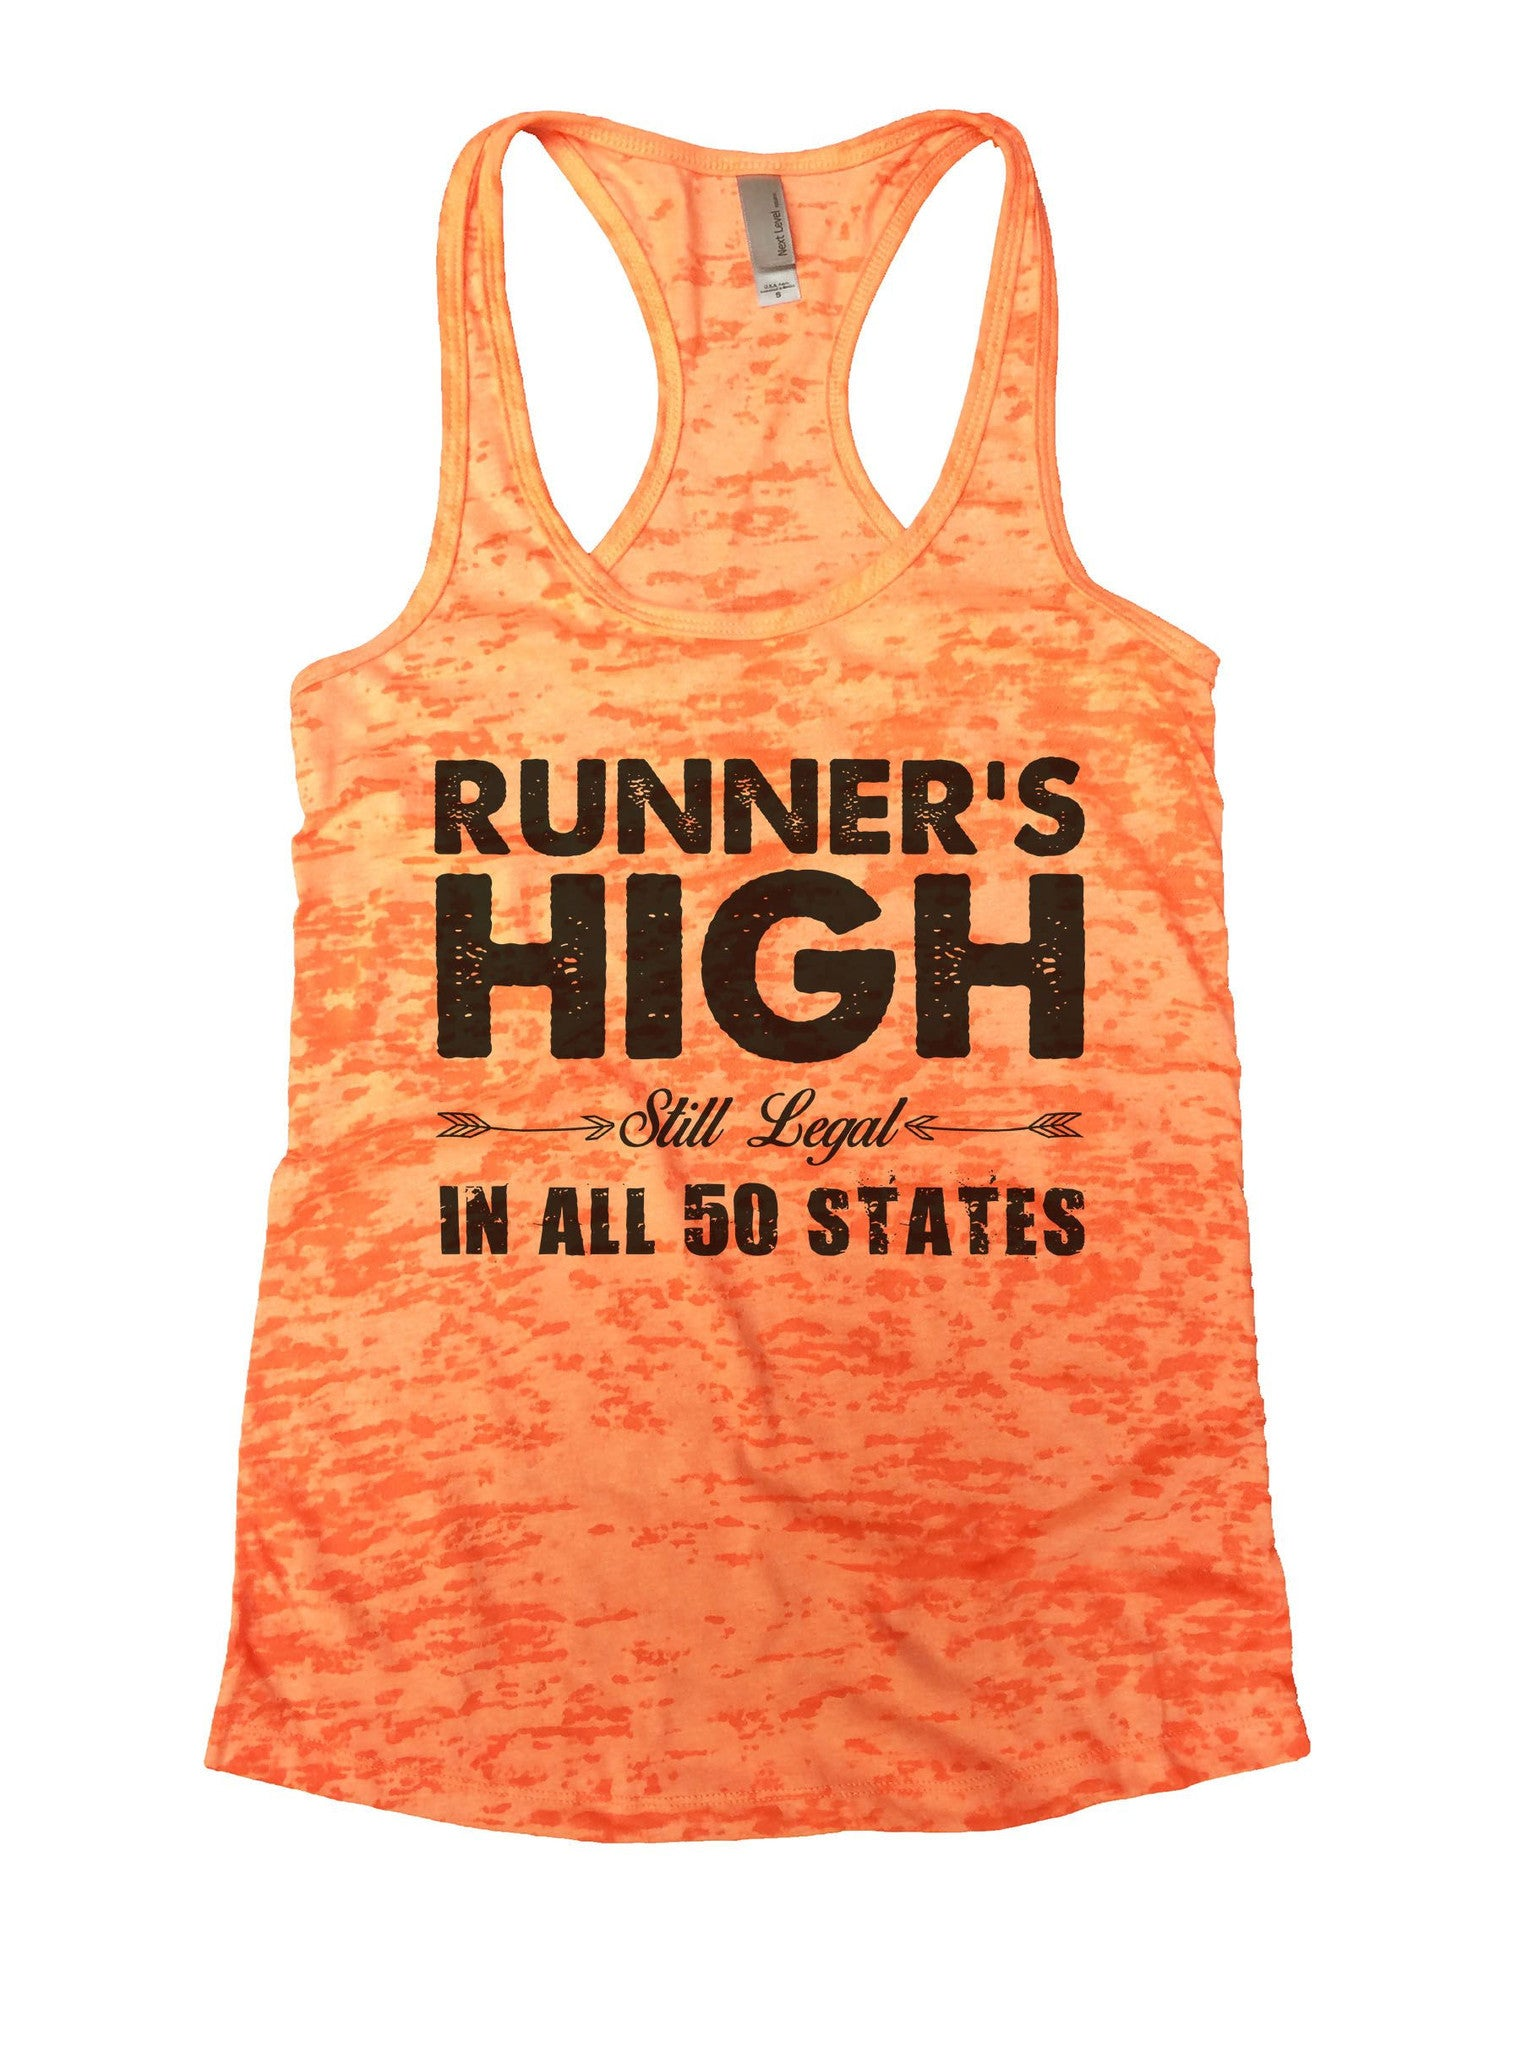 Runner's High Still Legal In All 50 States Burnout Tank Top By BurnoutTankTops.com - 902 - Funny Shirts Tank Tops Burnouts and Triblends  - 5